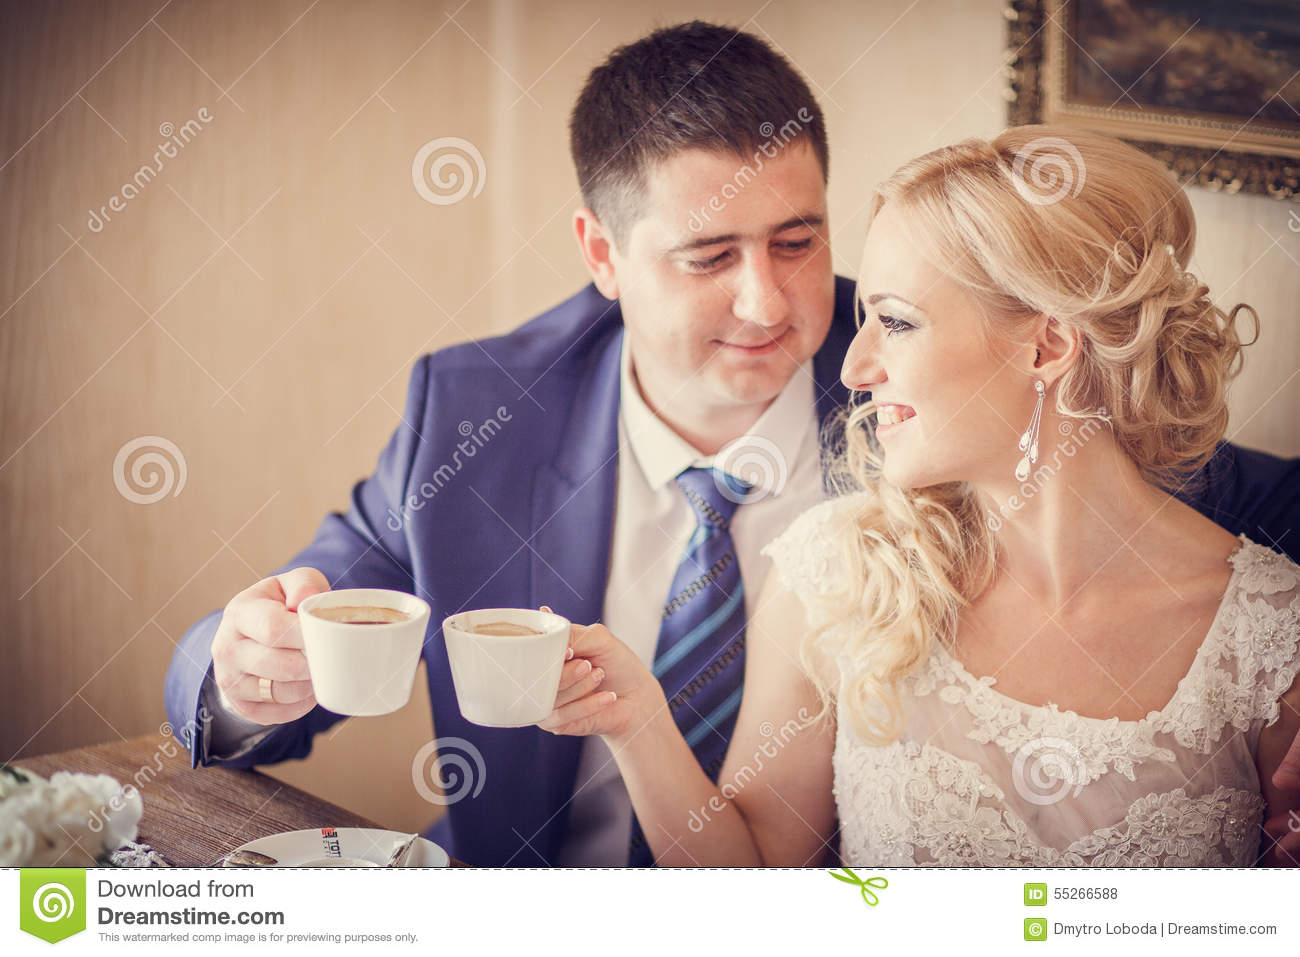 Groom, bride drink tea